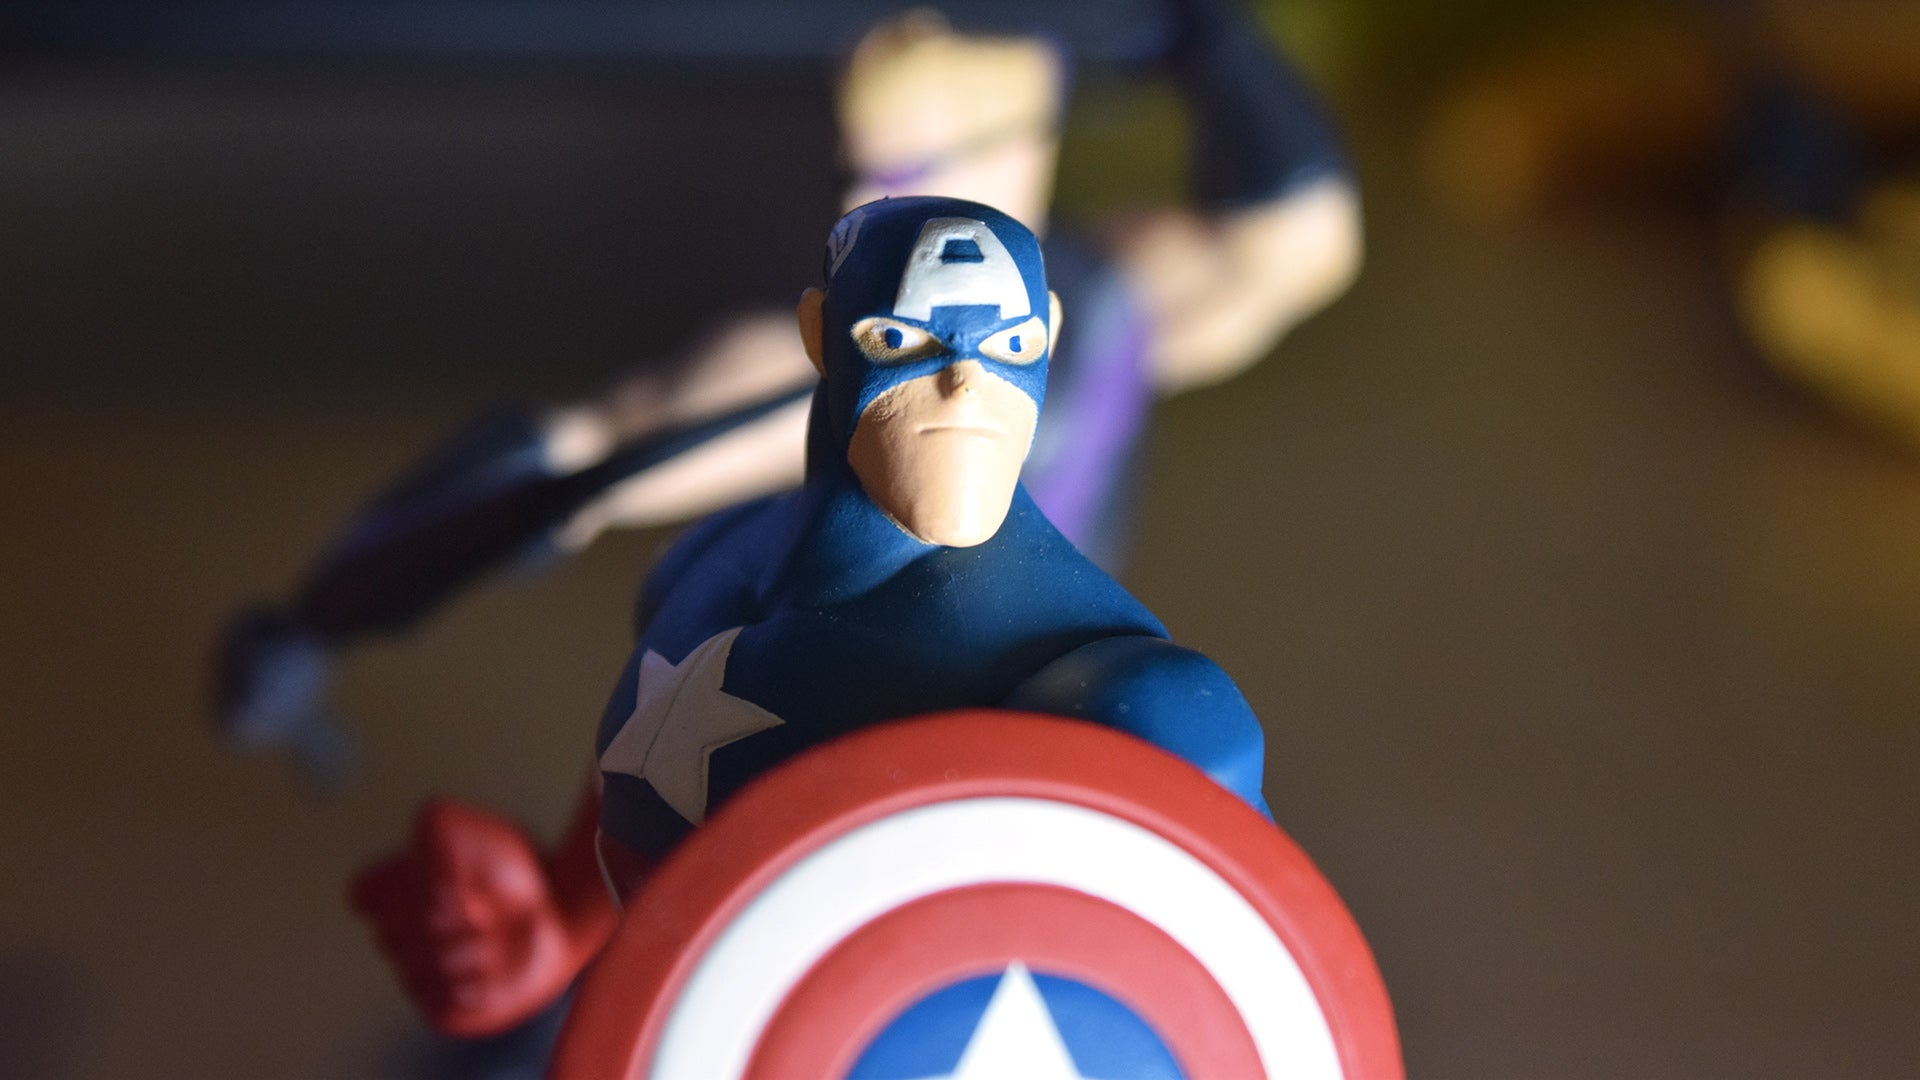 Disney Infinity's Marvel Toys Are Looking A Bit Rough